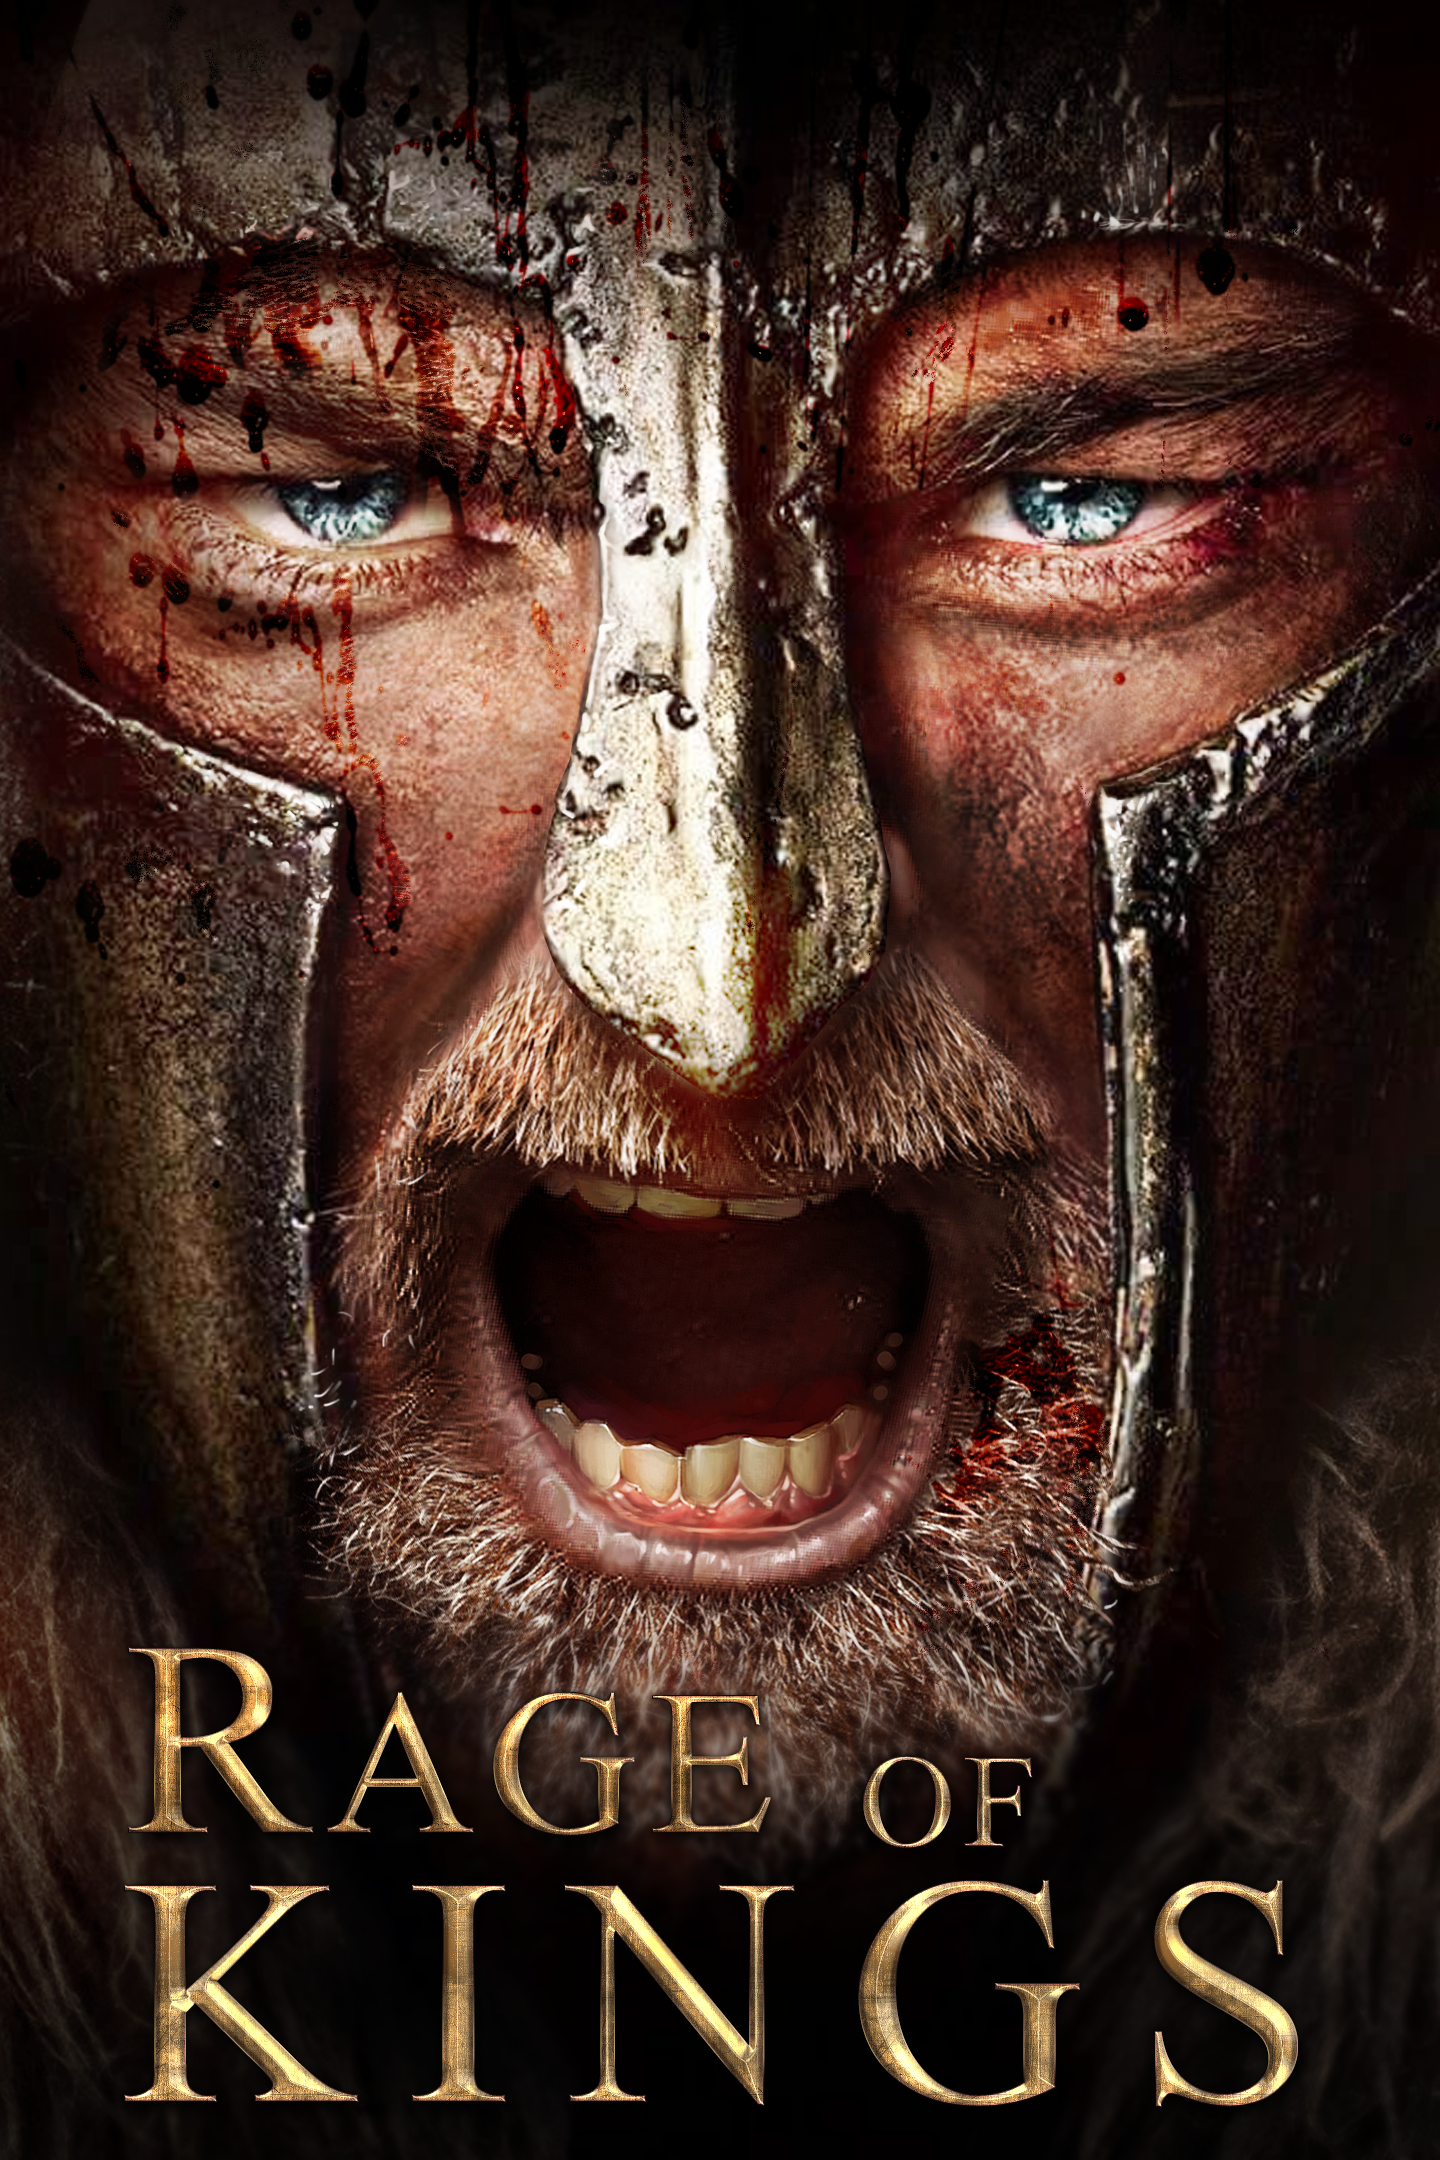 Rage of Kings: Defend Dawn War